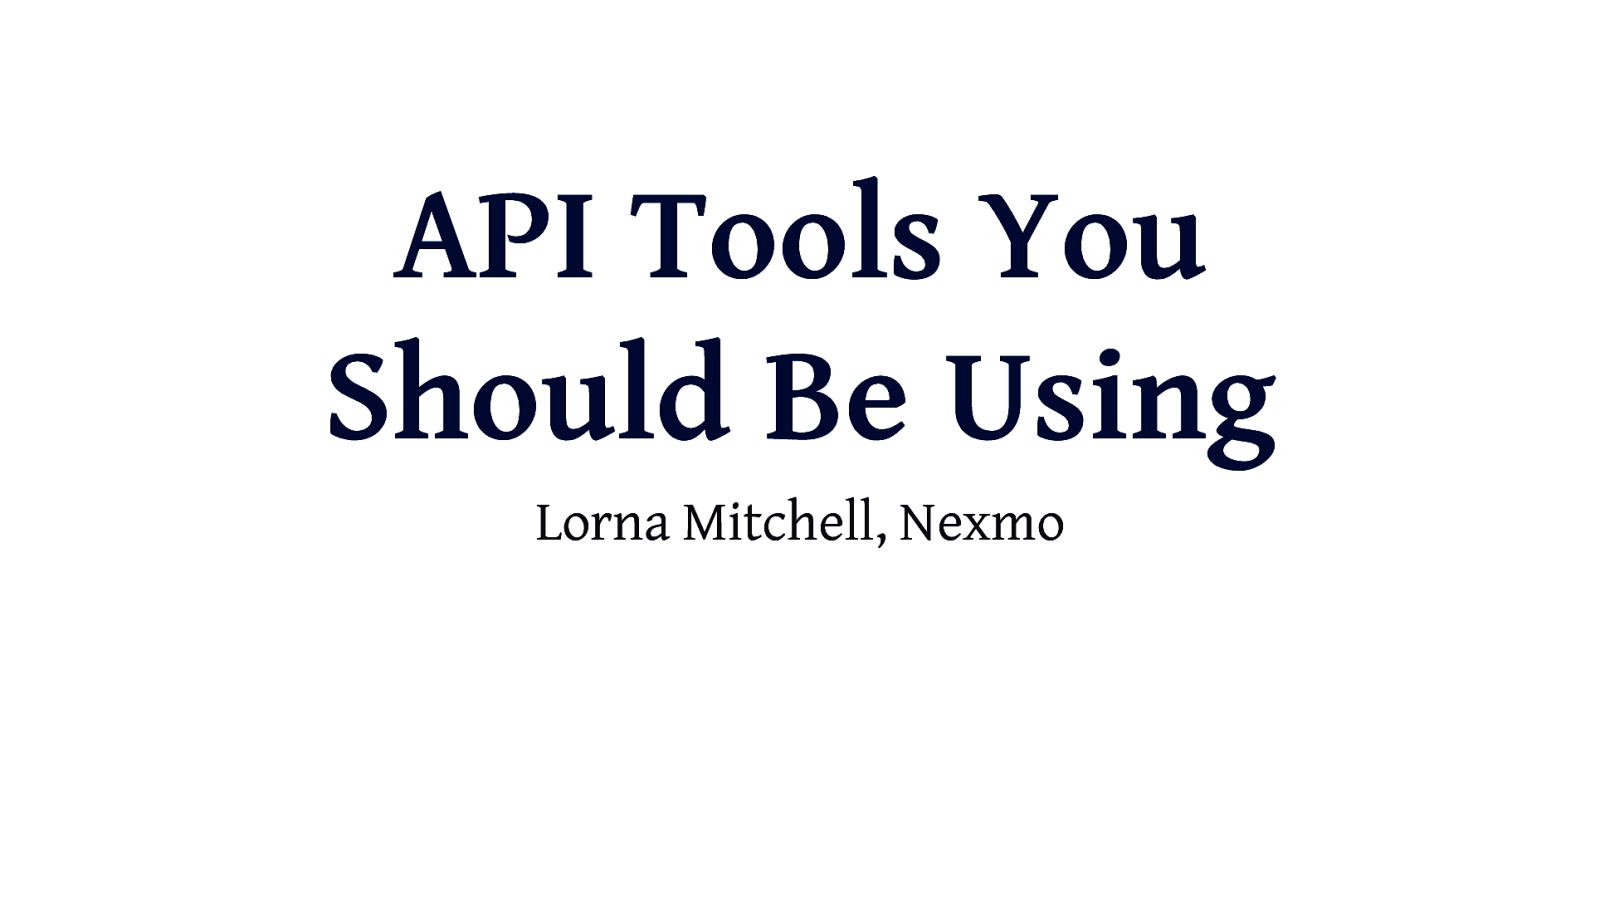 API Tools You Should be Using